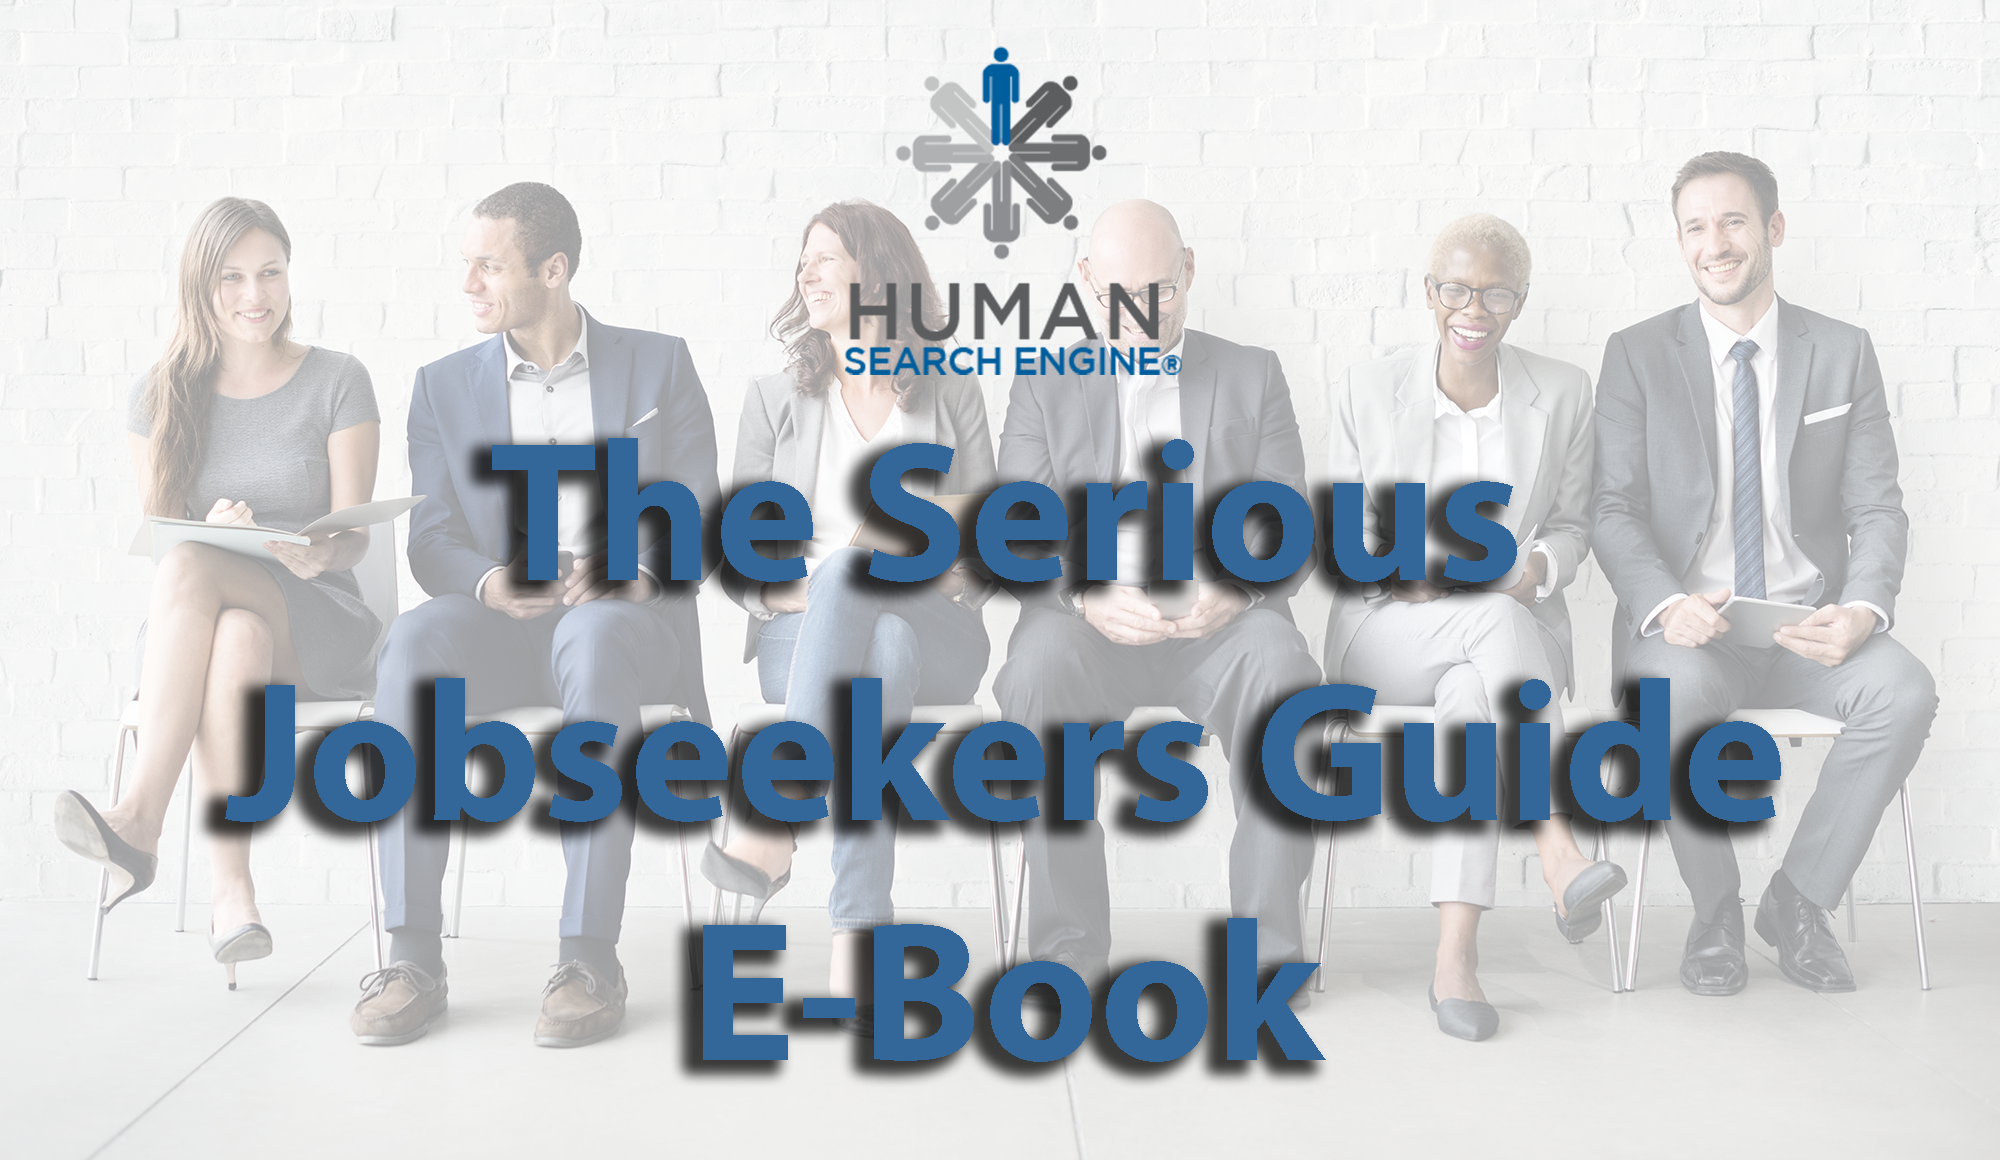 The Serious Job Seeker's Guide E-Book